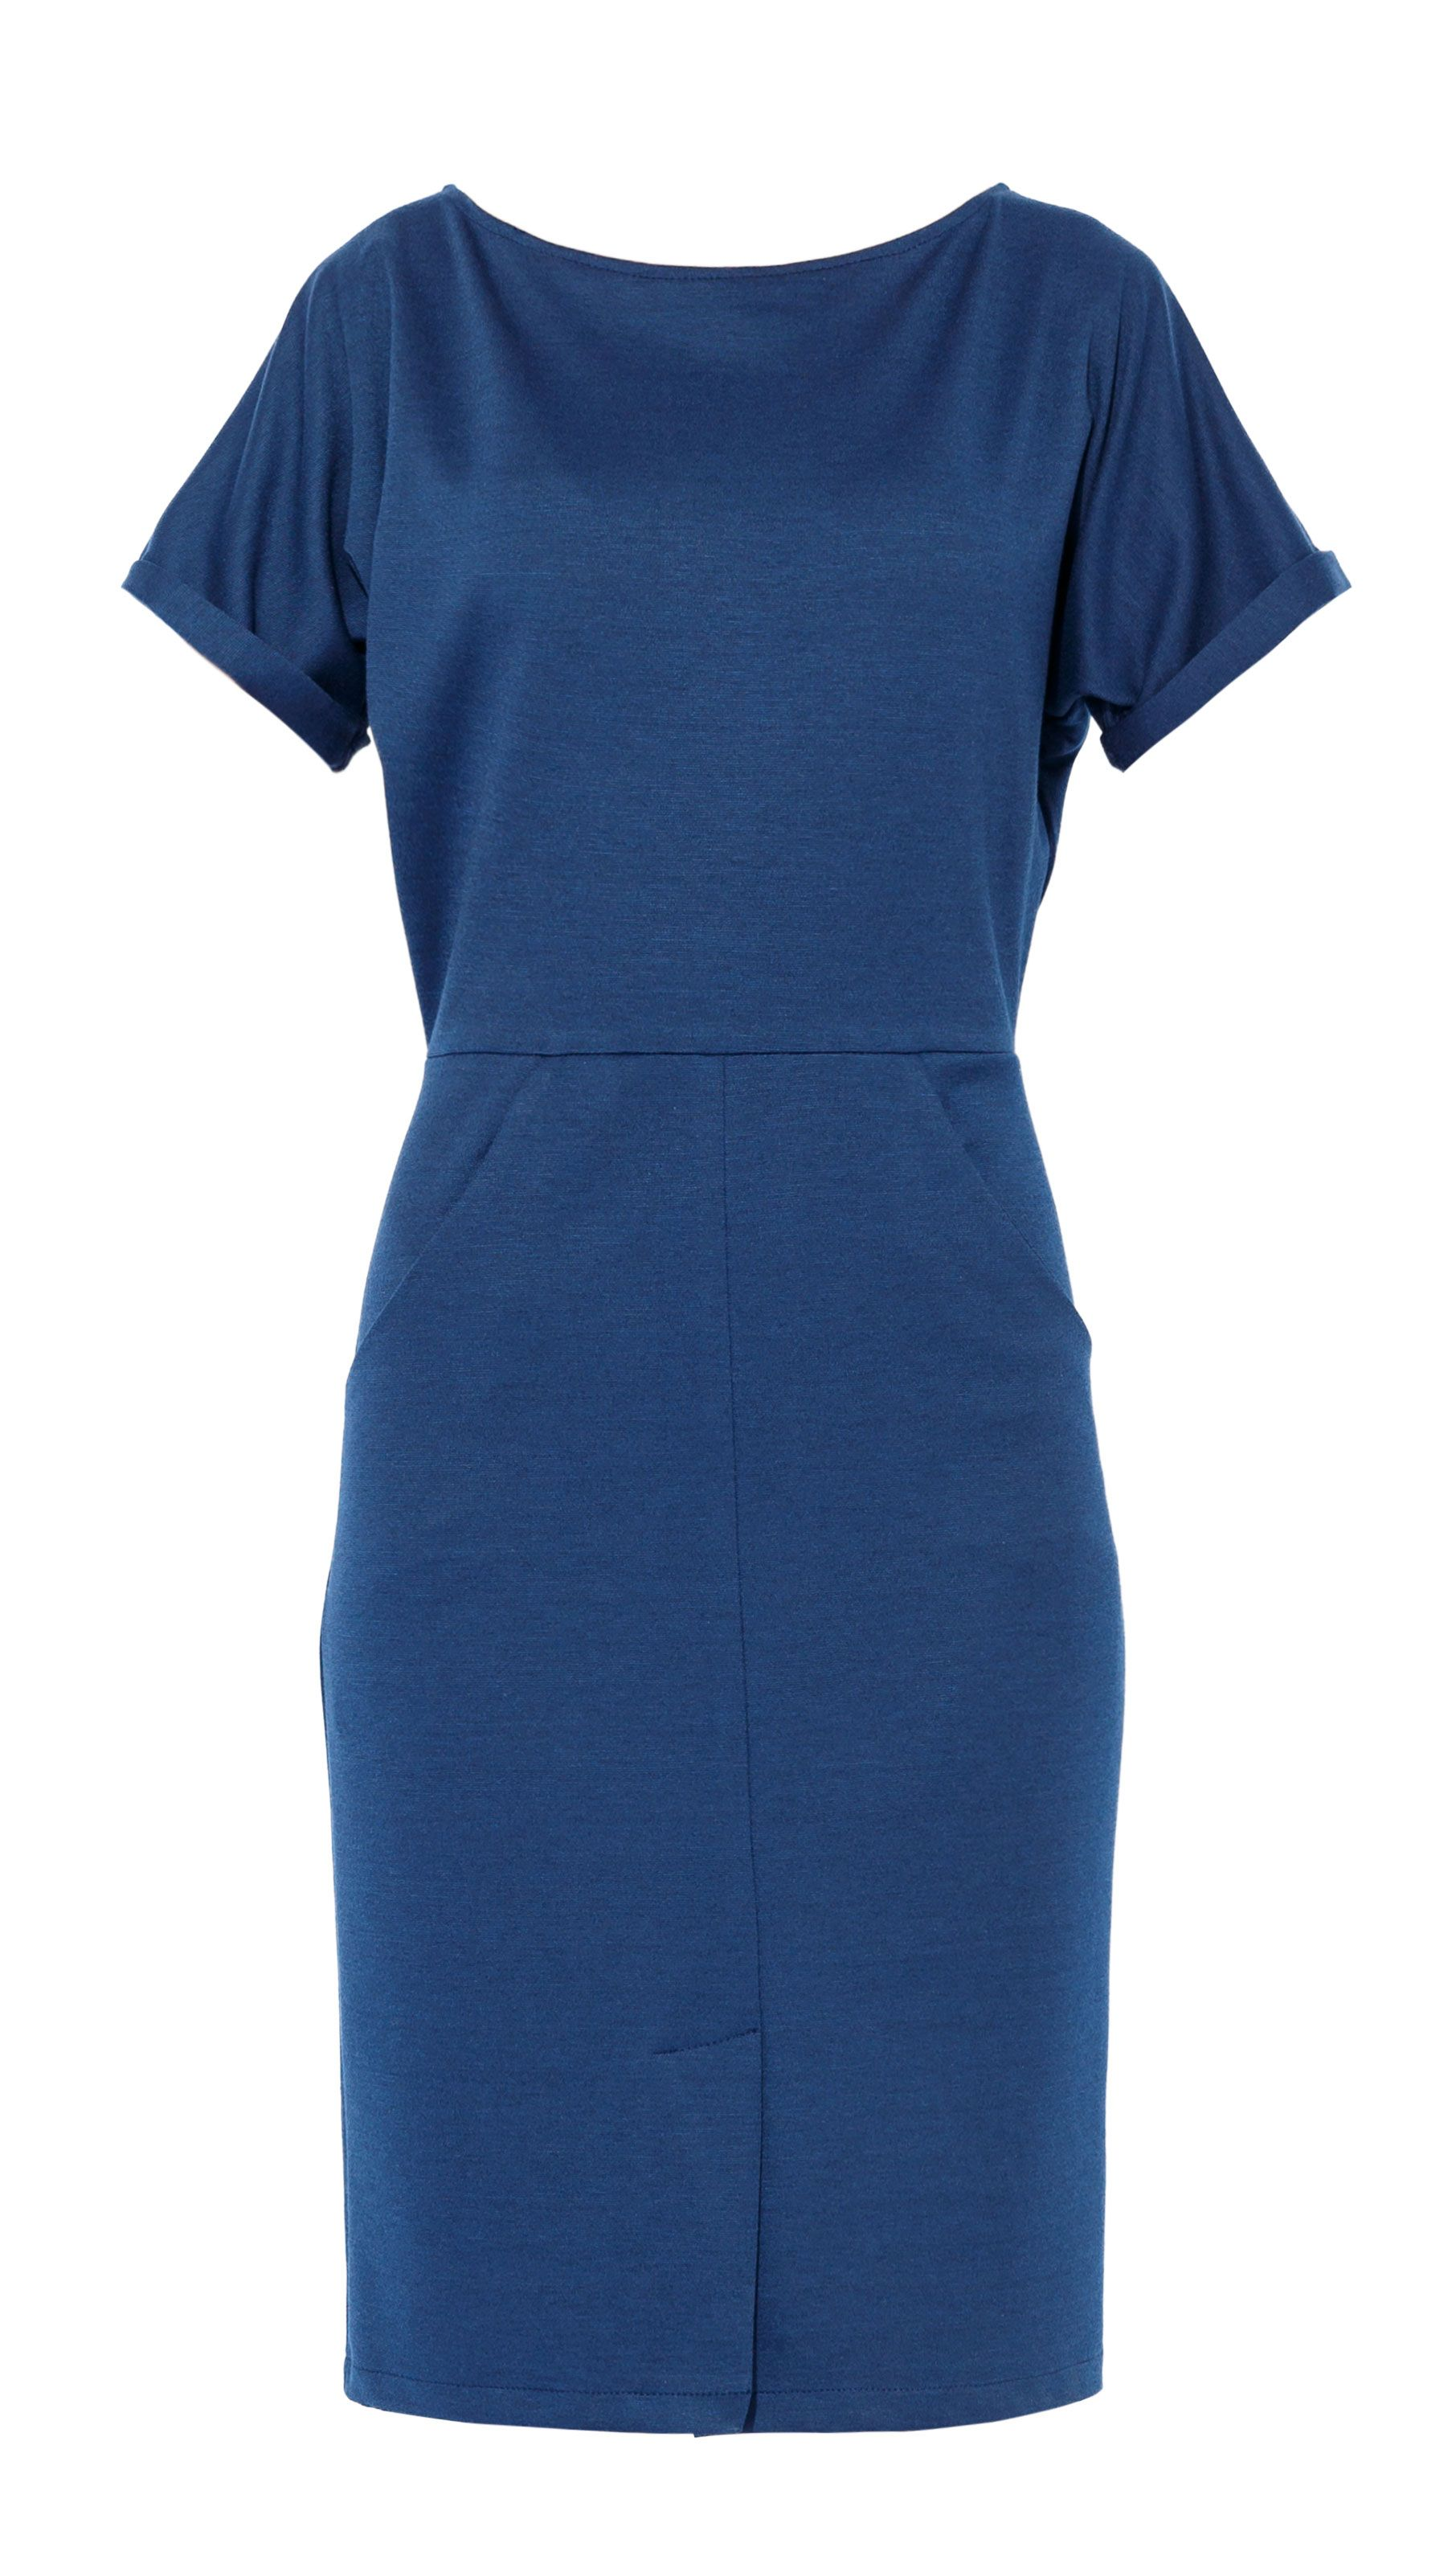 MAIOCCI Collection MAIOCCI Collection Fitted Day Dress, Blue